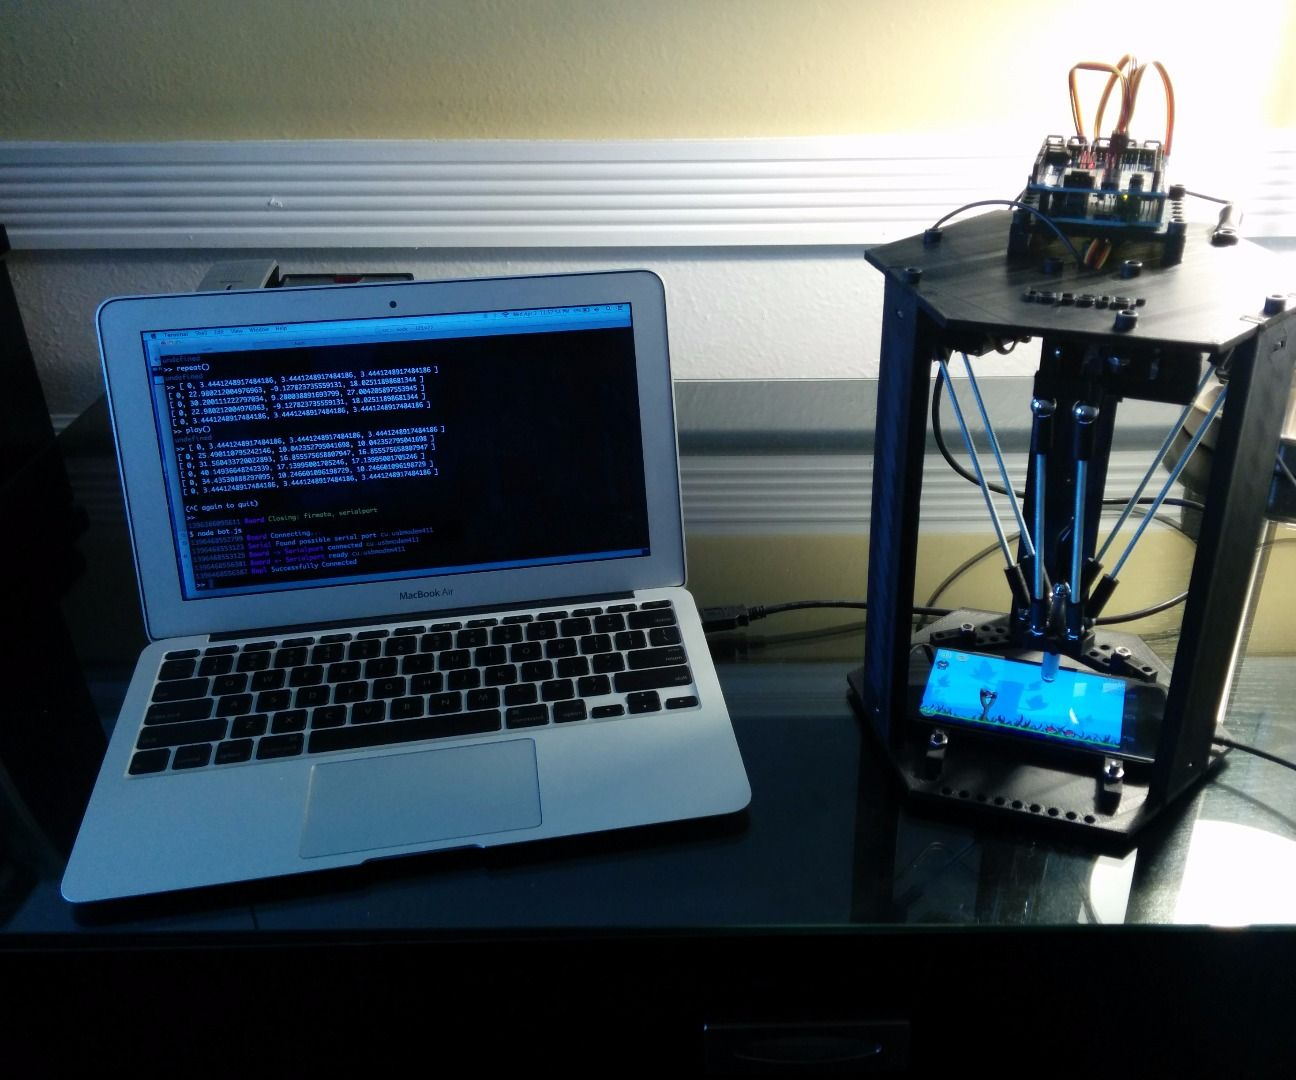 Tapsterbot 2.0: Delta Arm Assembly